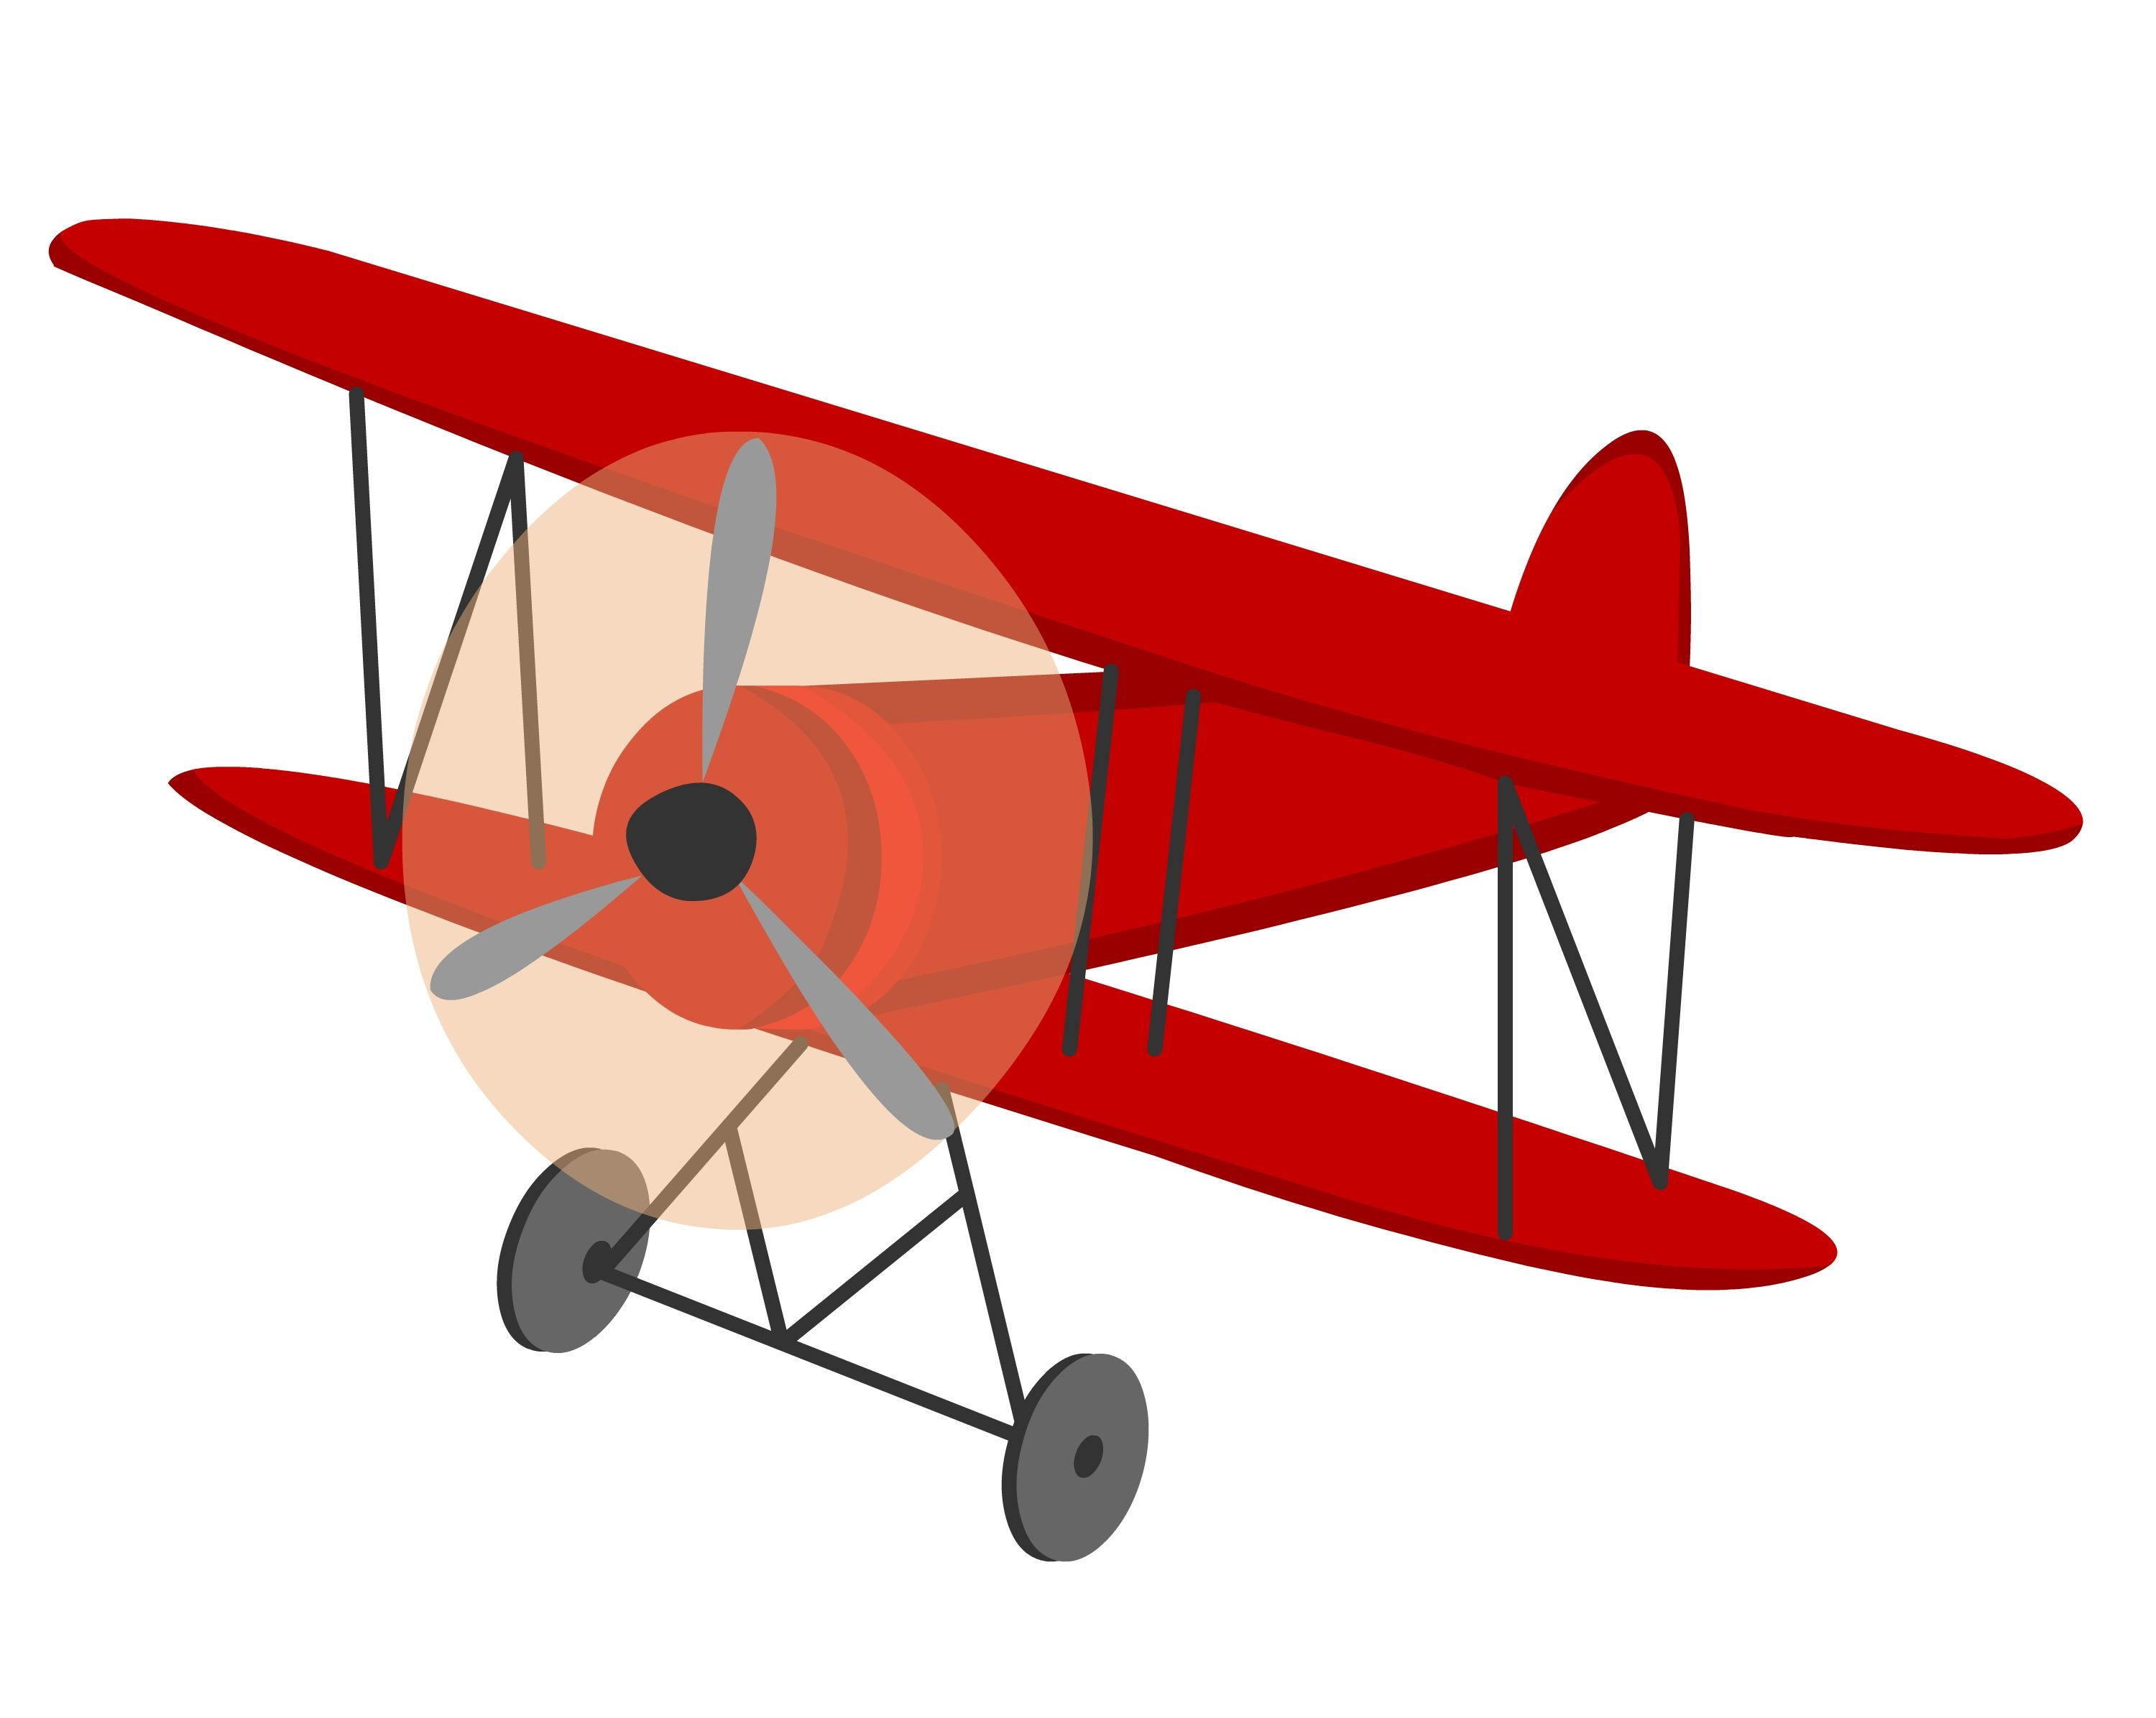 Airplane red. Vintage biplane clipart the